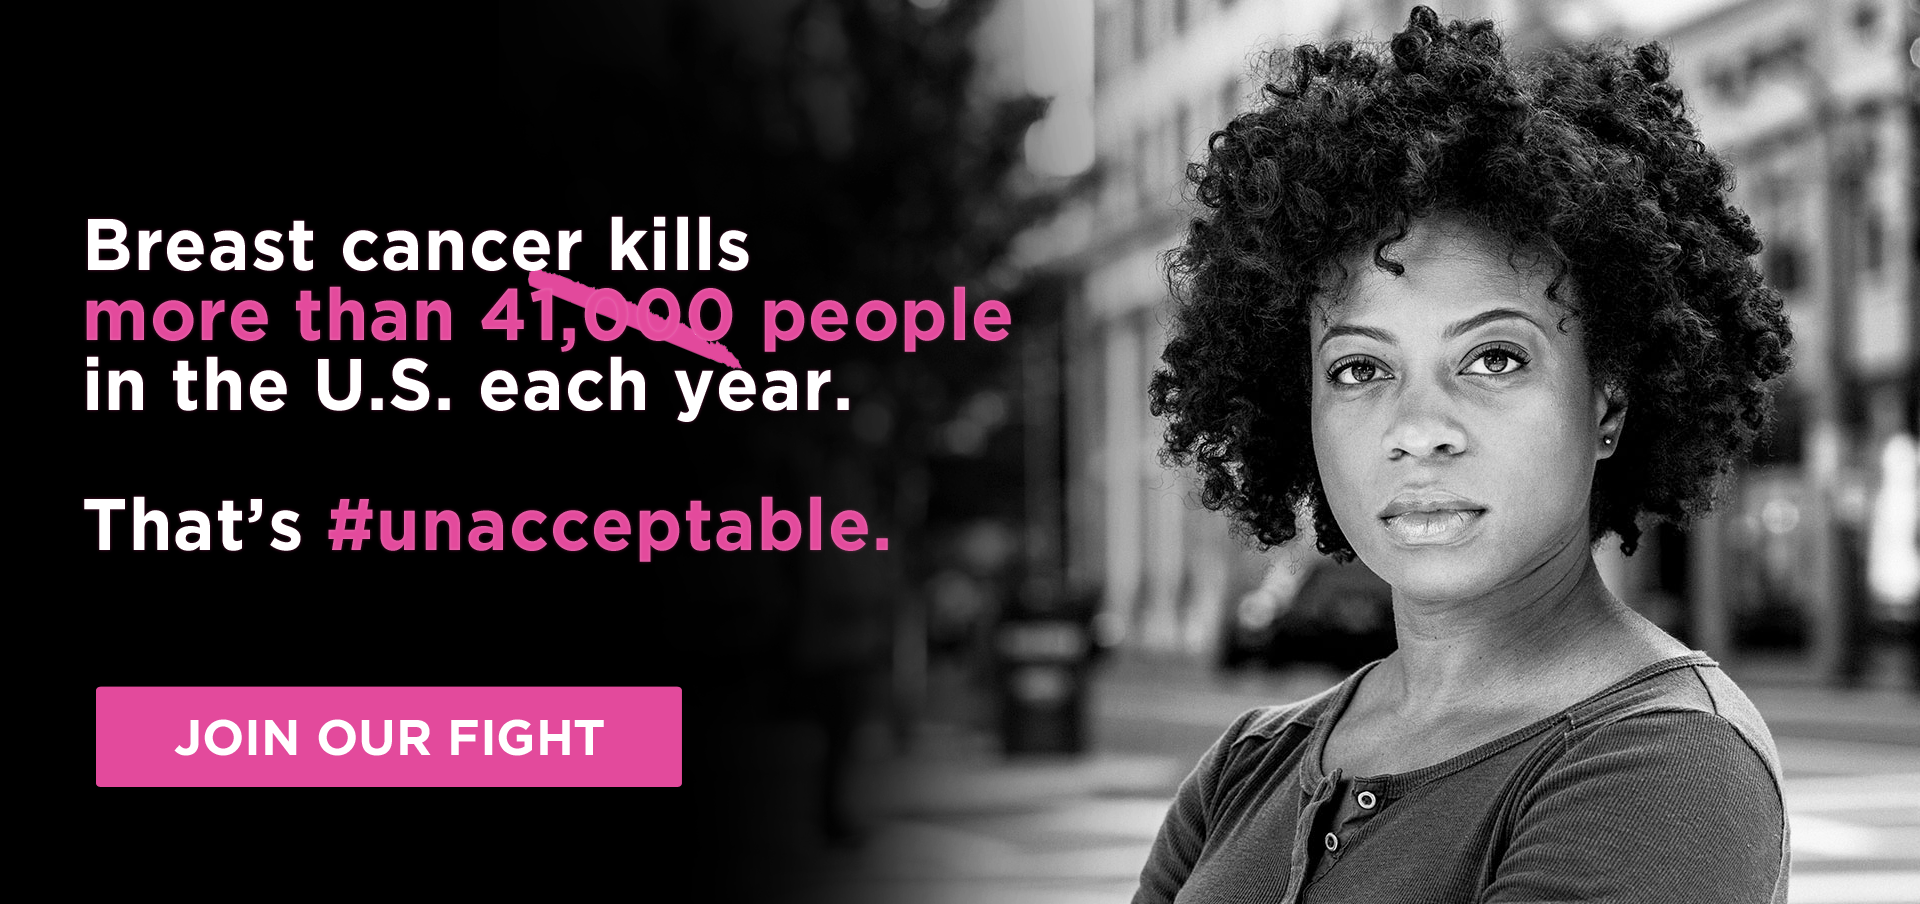 Breast Cancer kills 41,000 people in the U.S. each year. #unacceptable